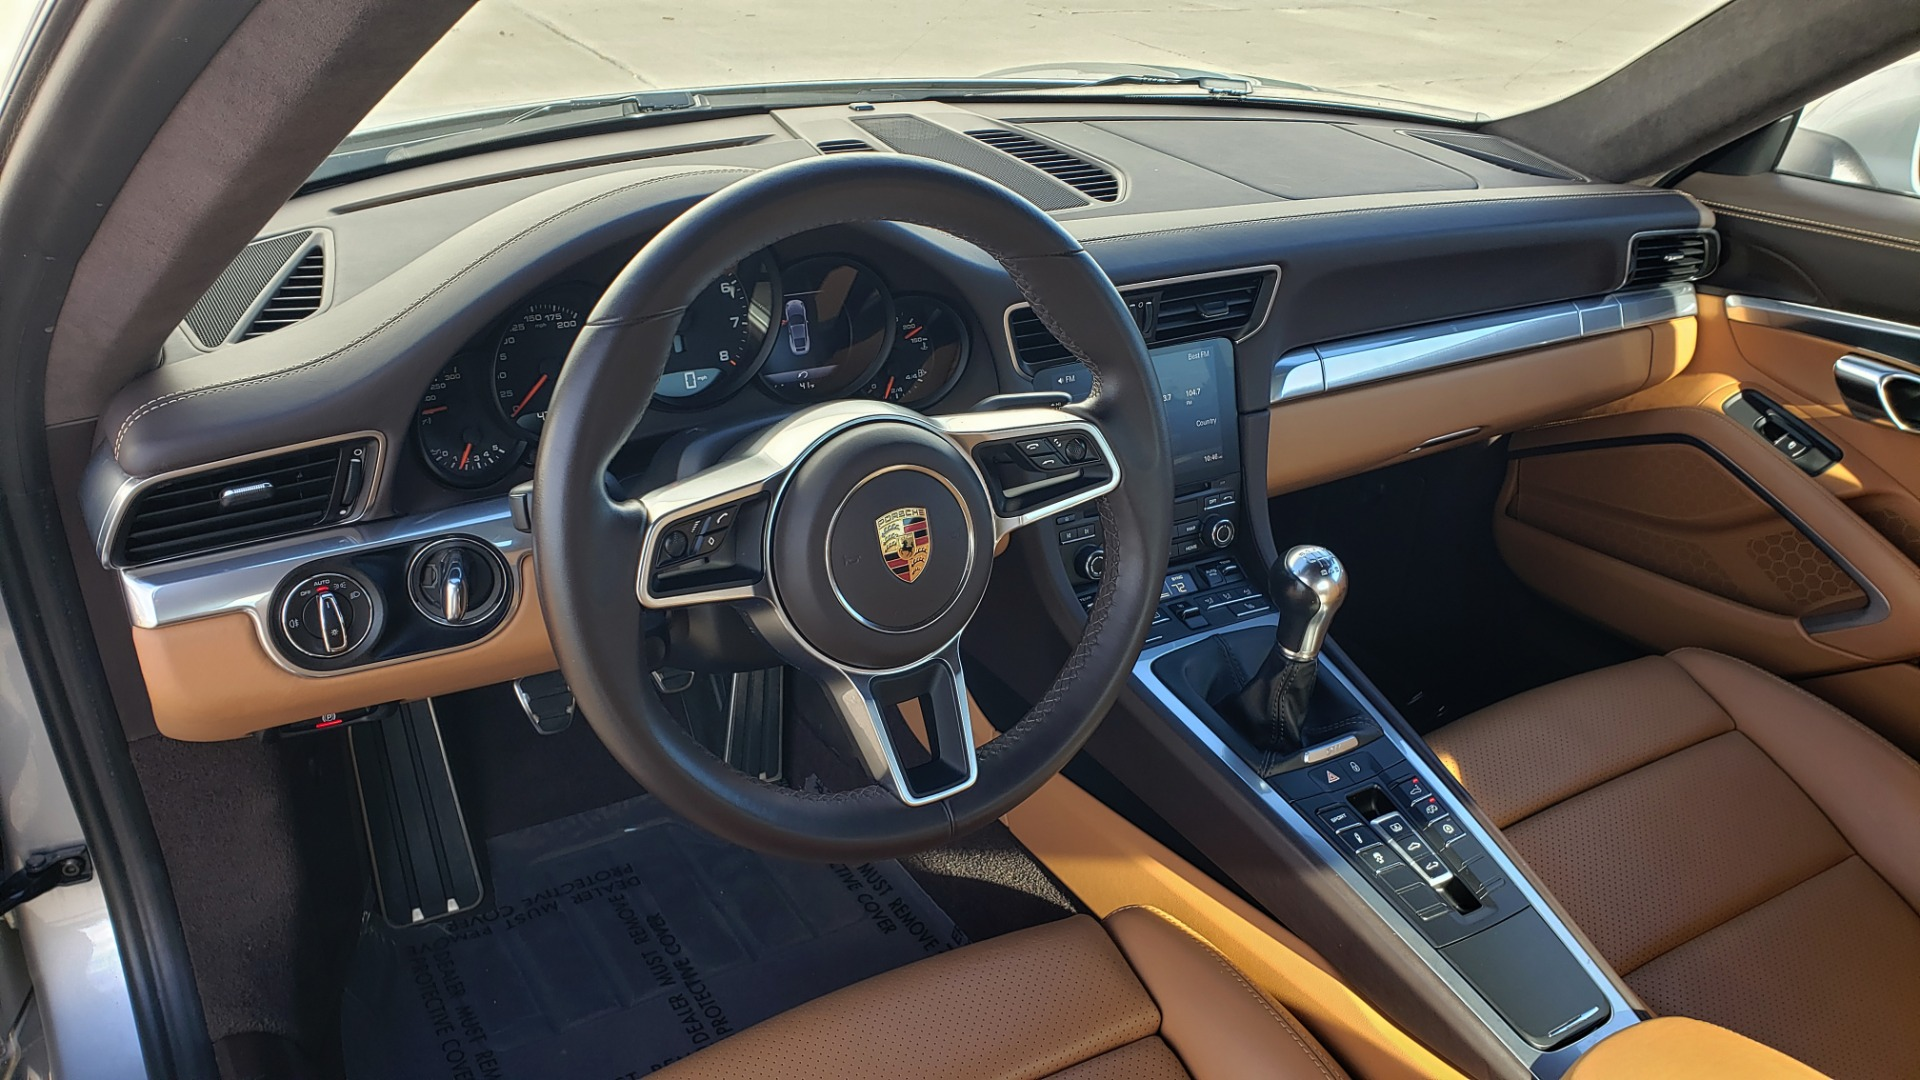 Used 2017 Porsche 911 CARRERA COUPE / 3.0L / 7-SPD MAN / NAV / PDLS / SUNROOF / REARVIEW for sale Sold at Formula Imports in Charlotte NC 28227 38